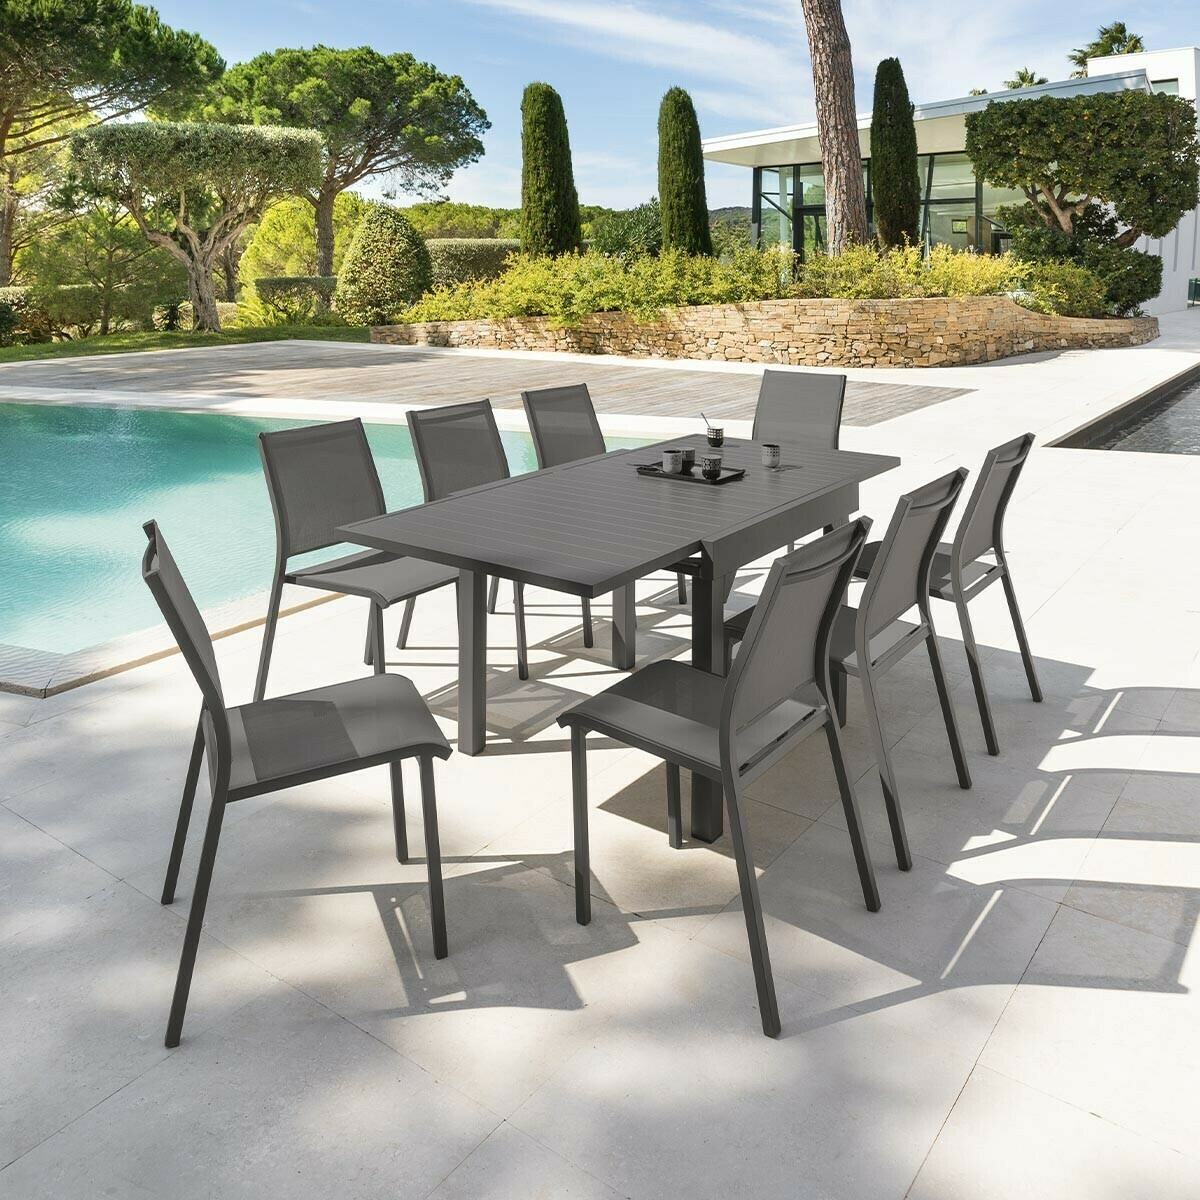 Table de jardin extensible Piazza Gris quartz